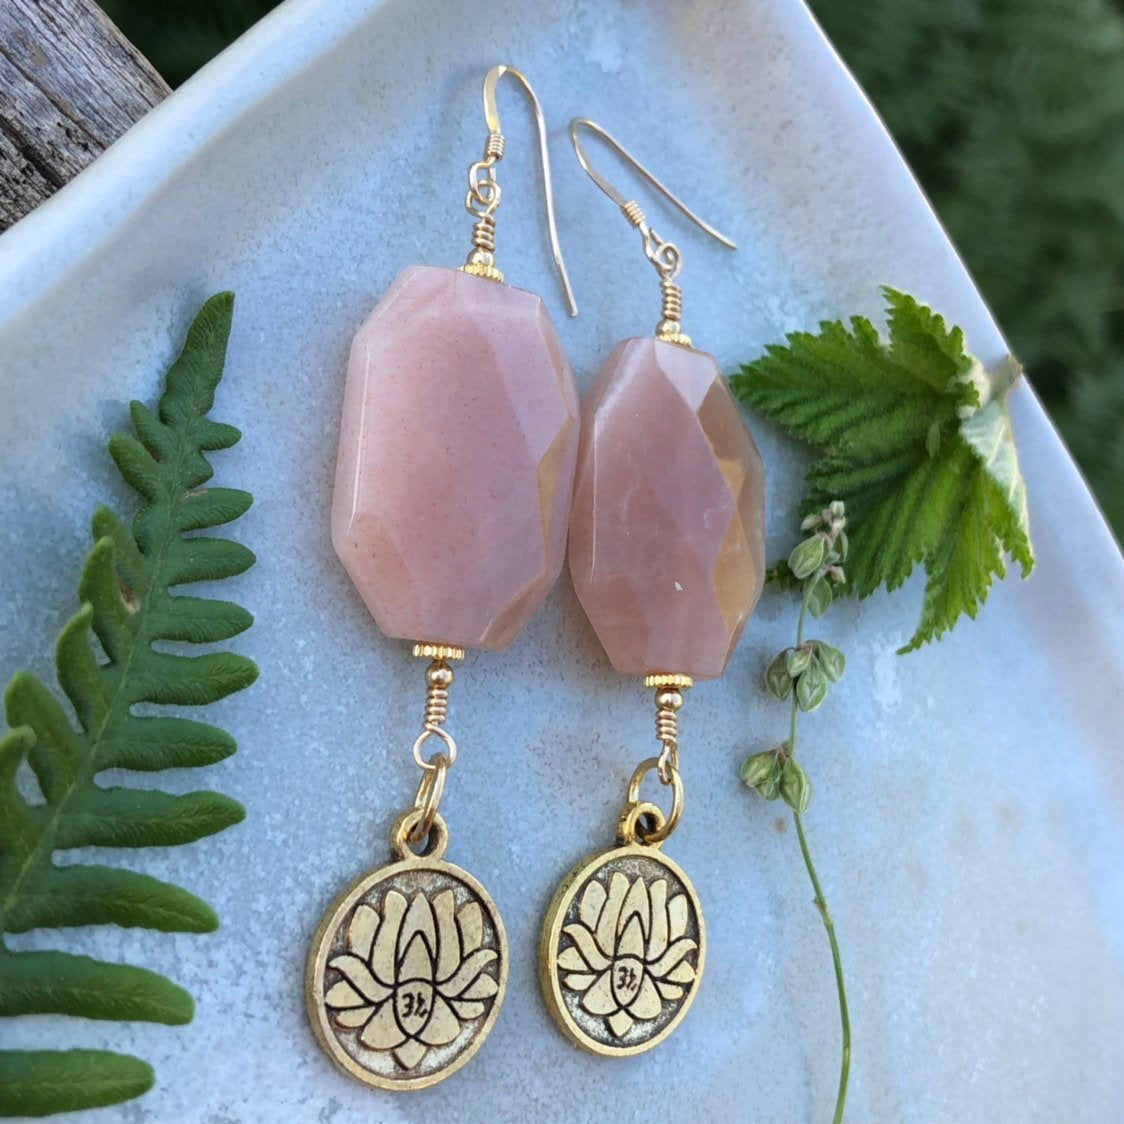 Made to Order Peach Moonstone Lotus Earrings / 14k Gold Filled Wire Hooks / Gold Lotus Om Charm / Faceted Peach Moonstone Earrings Boho Pink